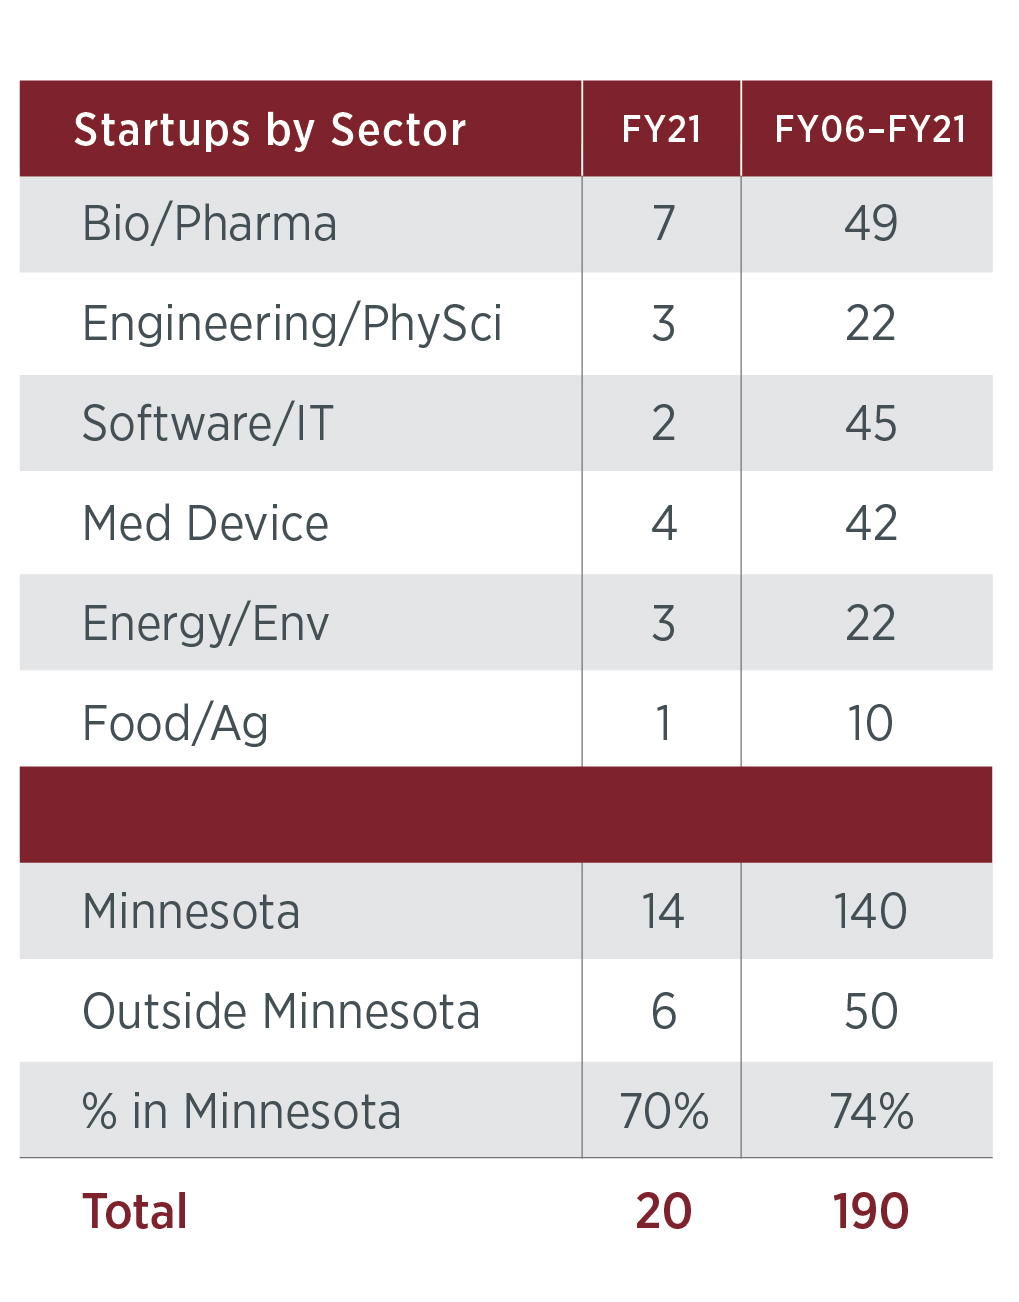 Complex table. Total Startups launched in FY20: 19. Total launched since 2006: 170. For breakdown of Minnesota vs. Outside Minnesota, and for a breakdown of startups launched in each category, email ovprcomm@umn.edu.